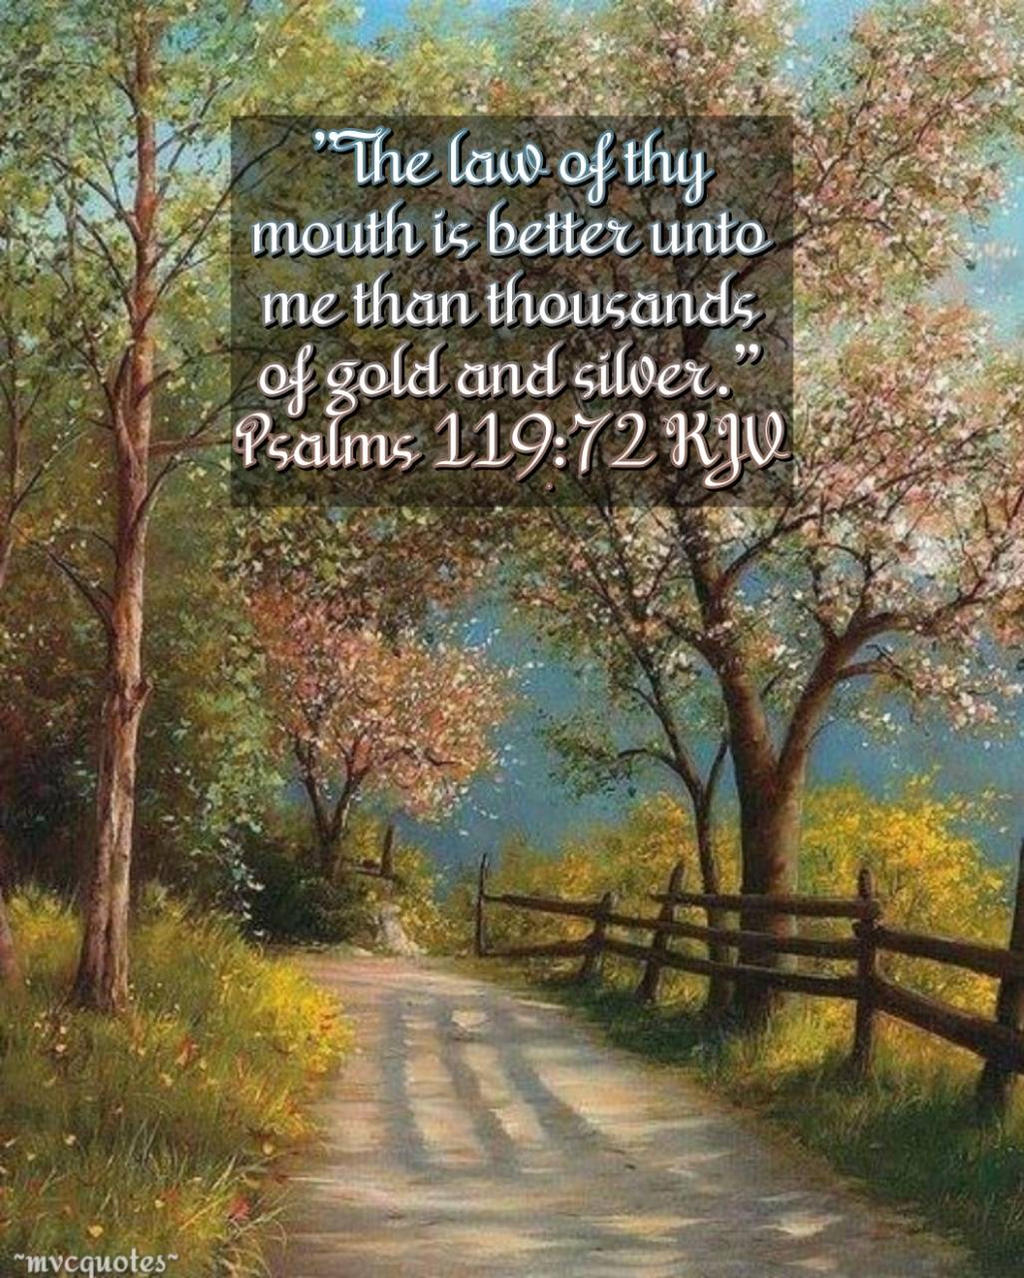 Psalms 119:72 by mvcquotes on DeviantArt